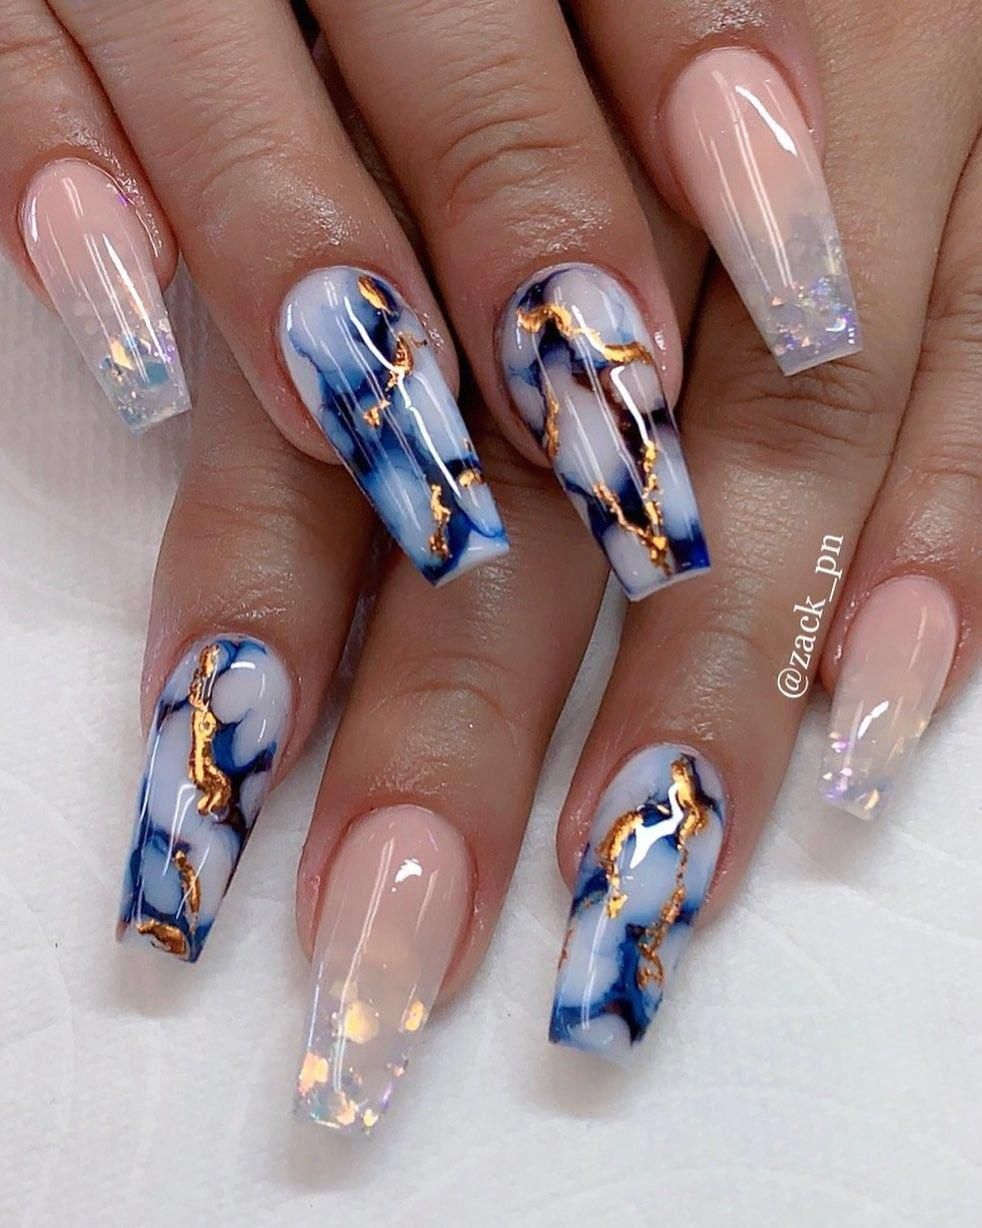 Installation Of Acrylic Or Gel Nails In 2020 Summer Acrylic Nails Coffin Nails Designs Pretty Acrylic Nails